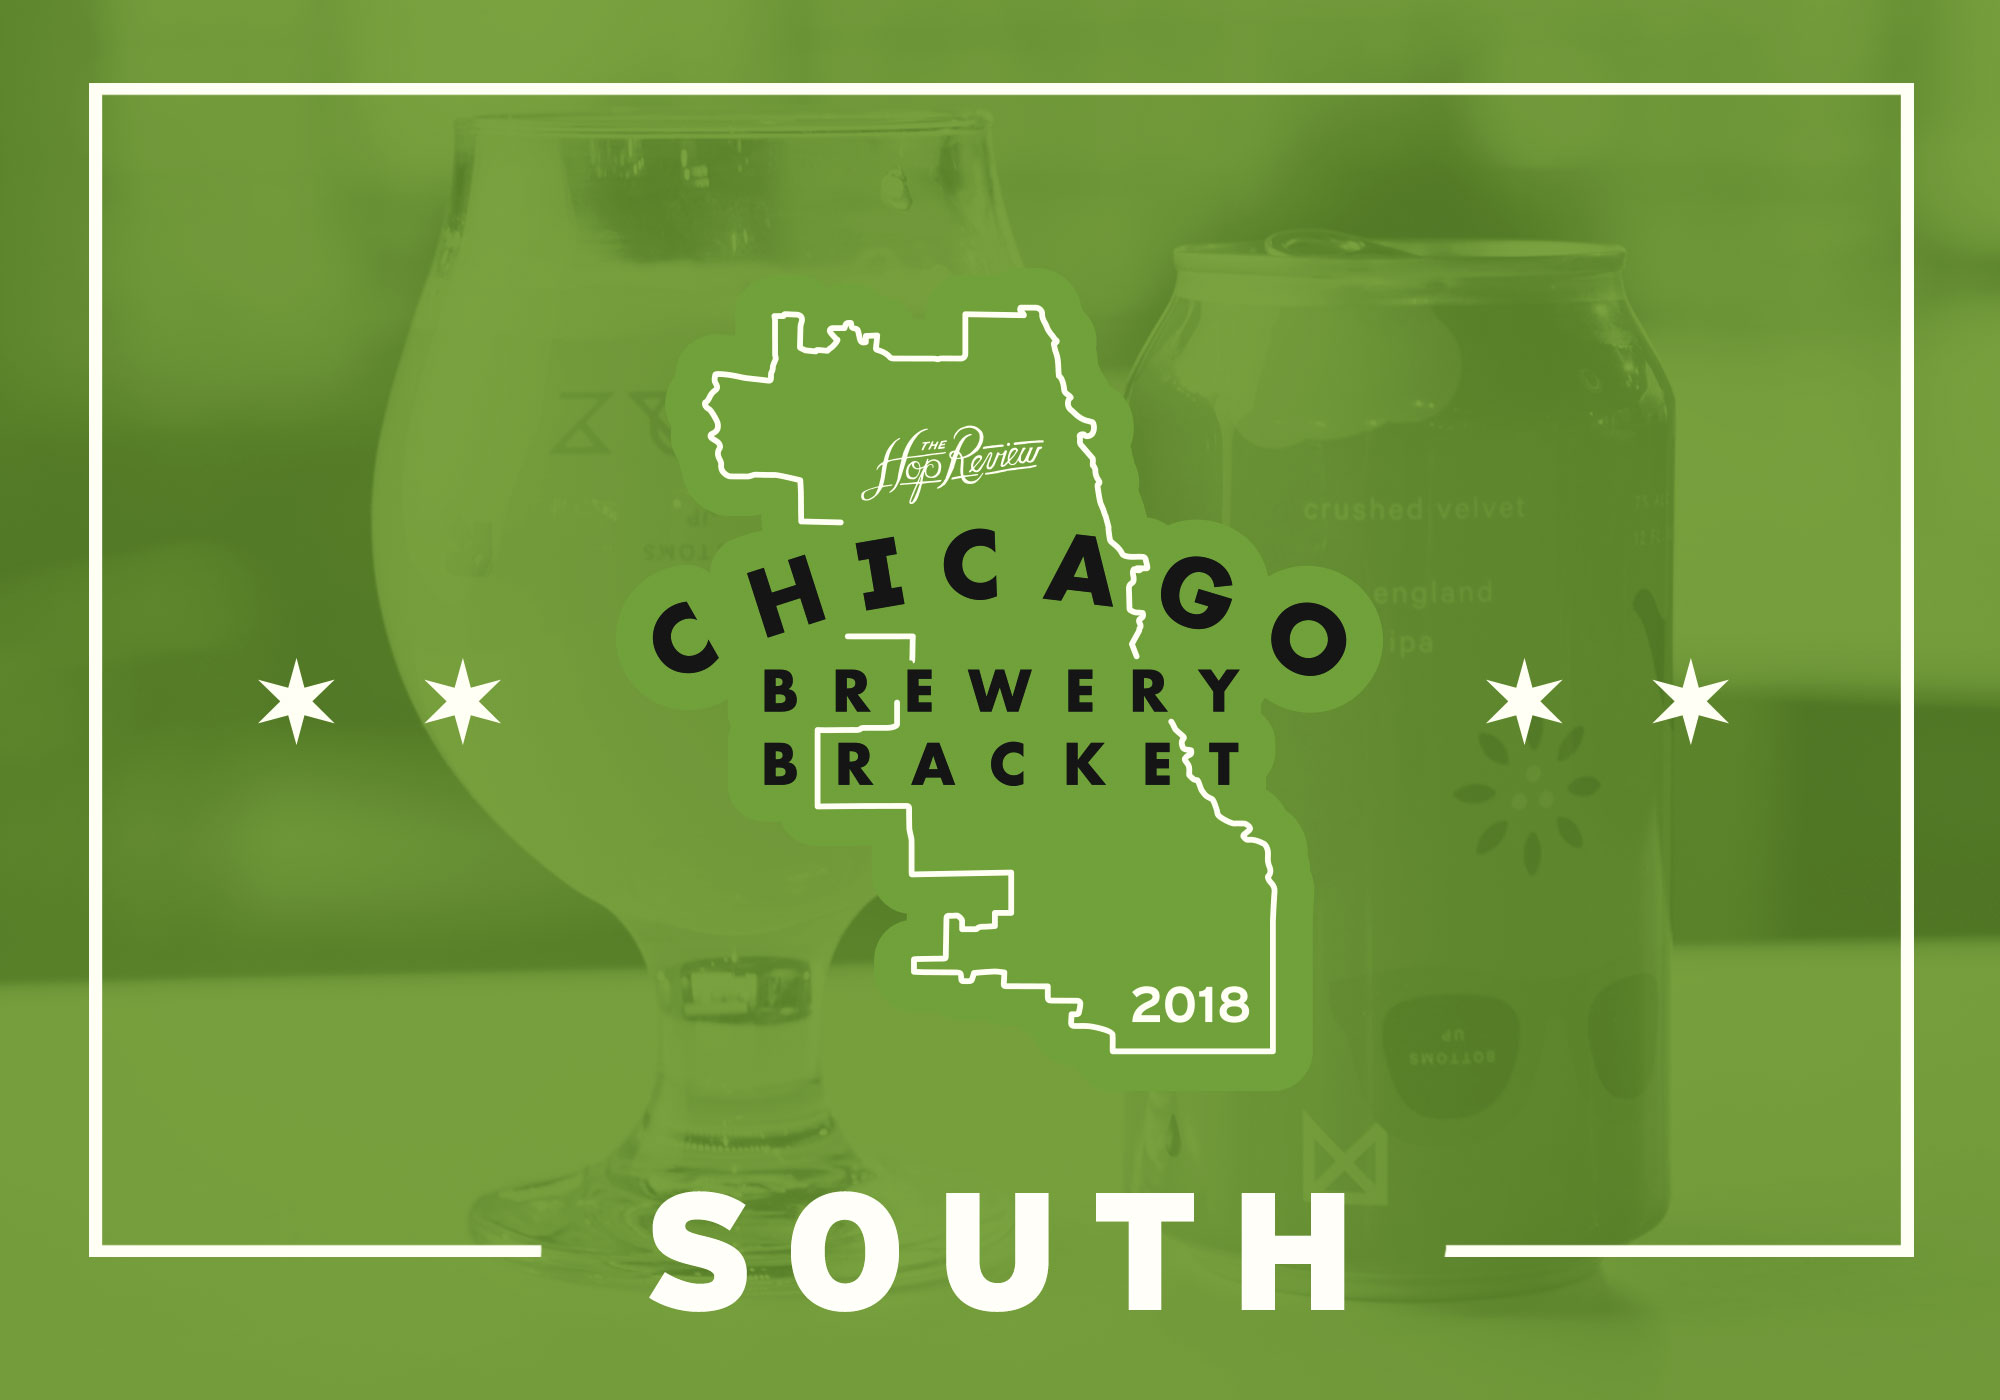 2018 Chicago Brewery Bracket: South – Rd. 1